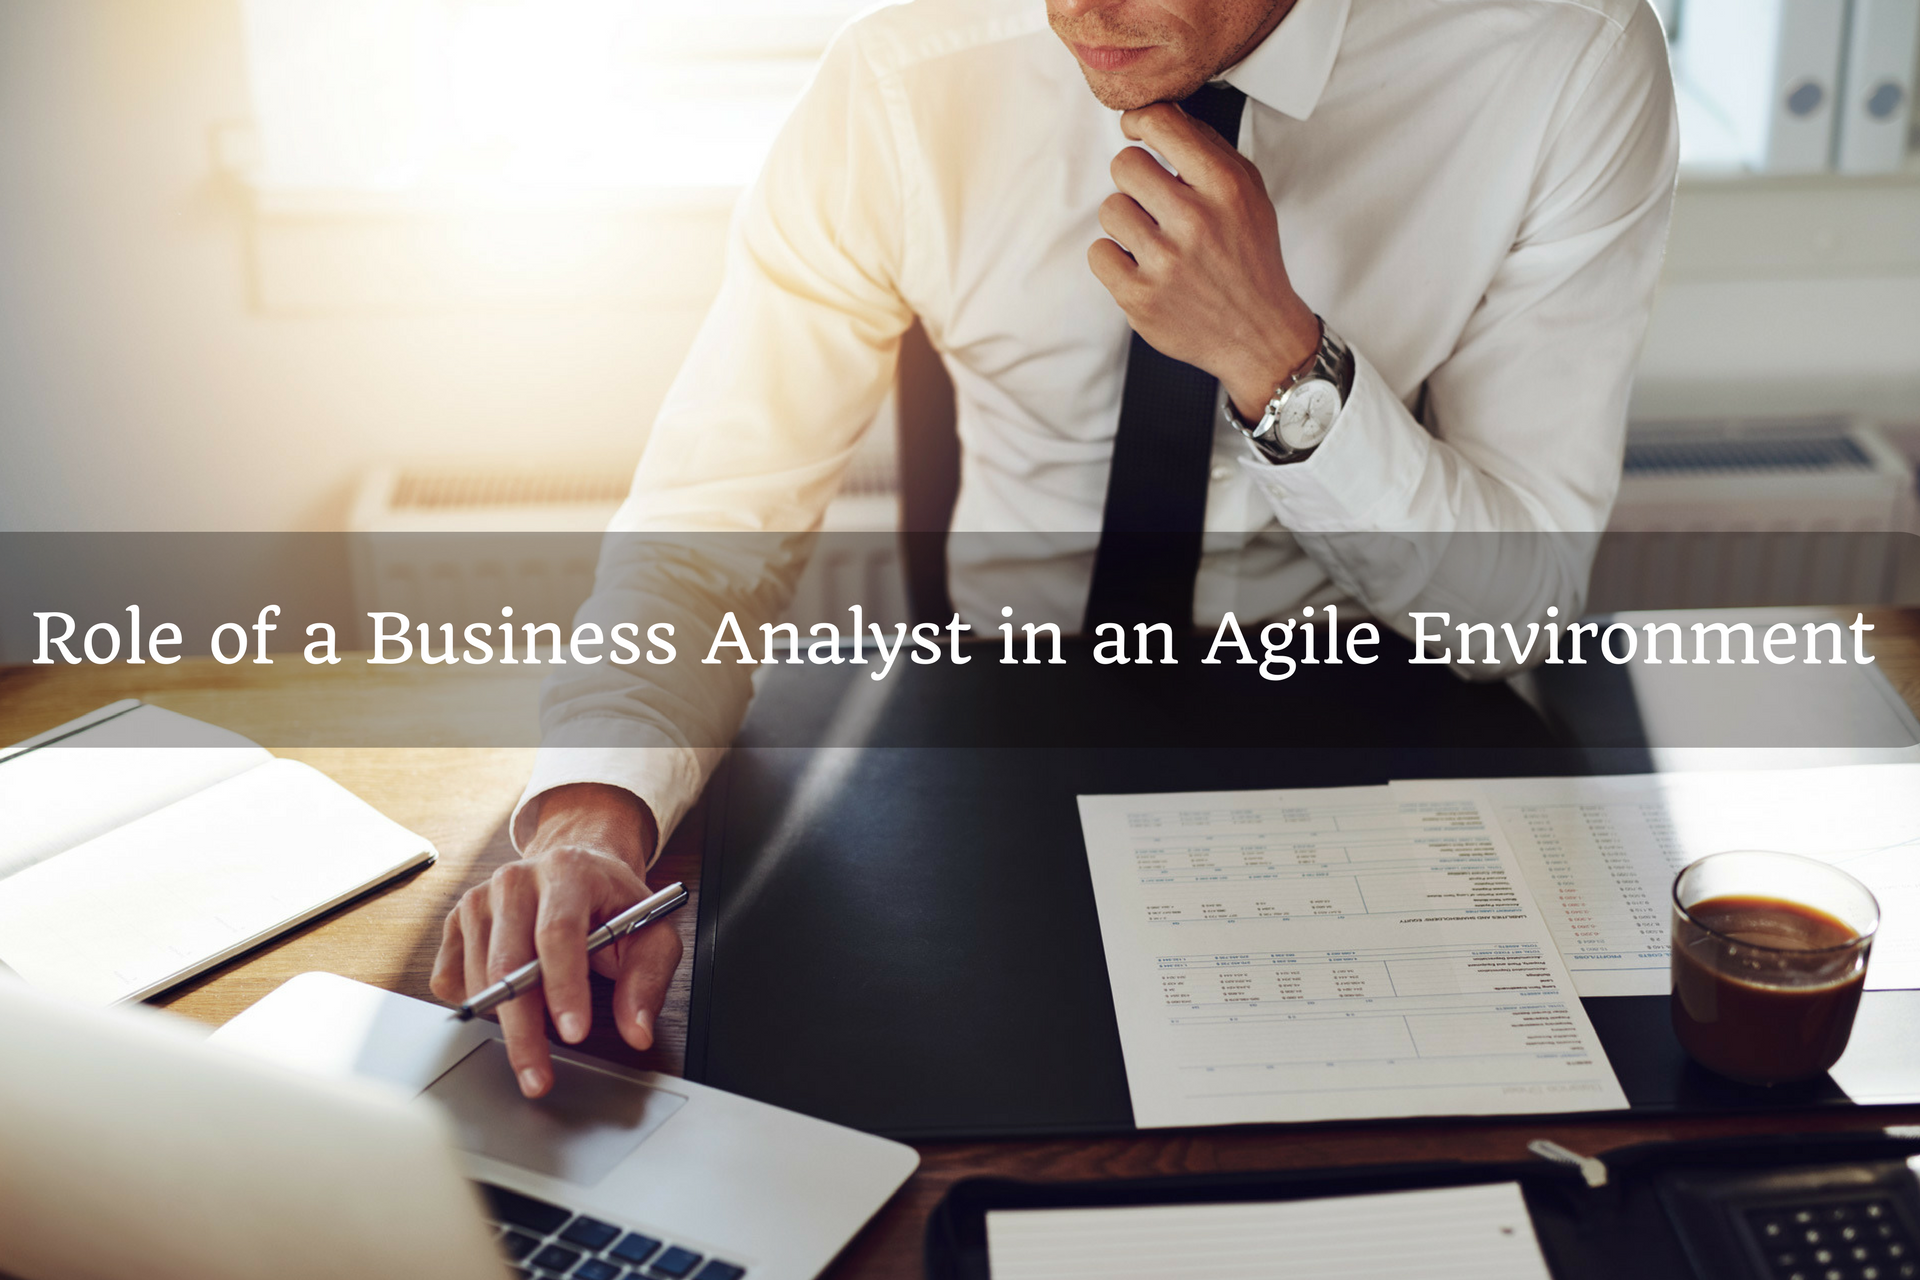 role of a business analyst in an agile environment